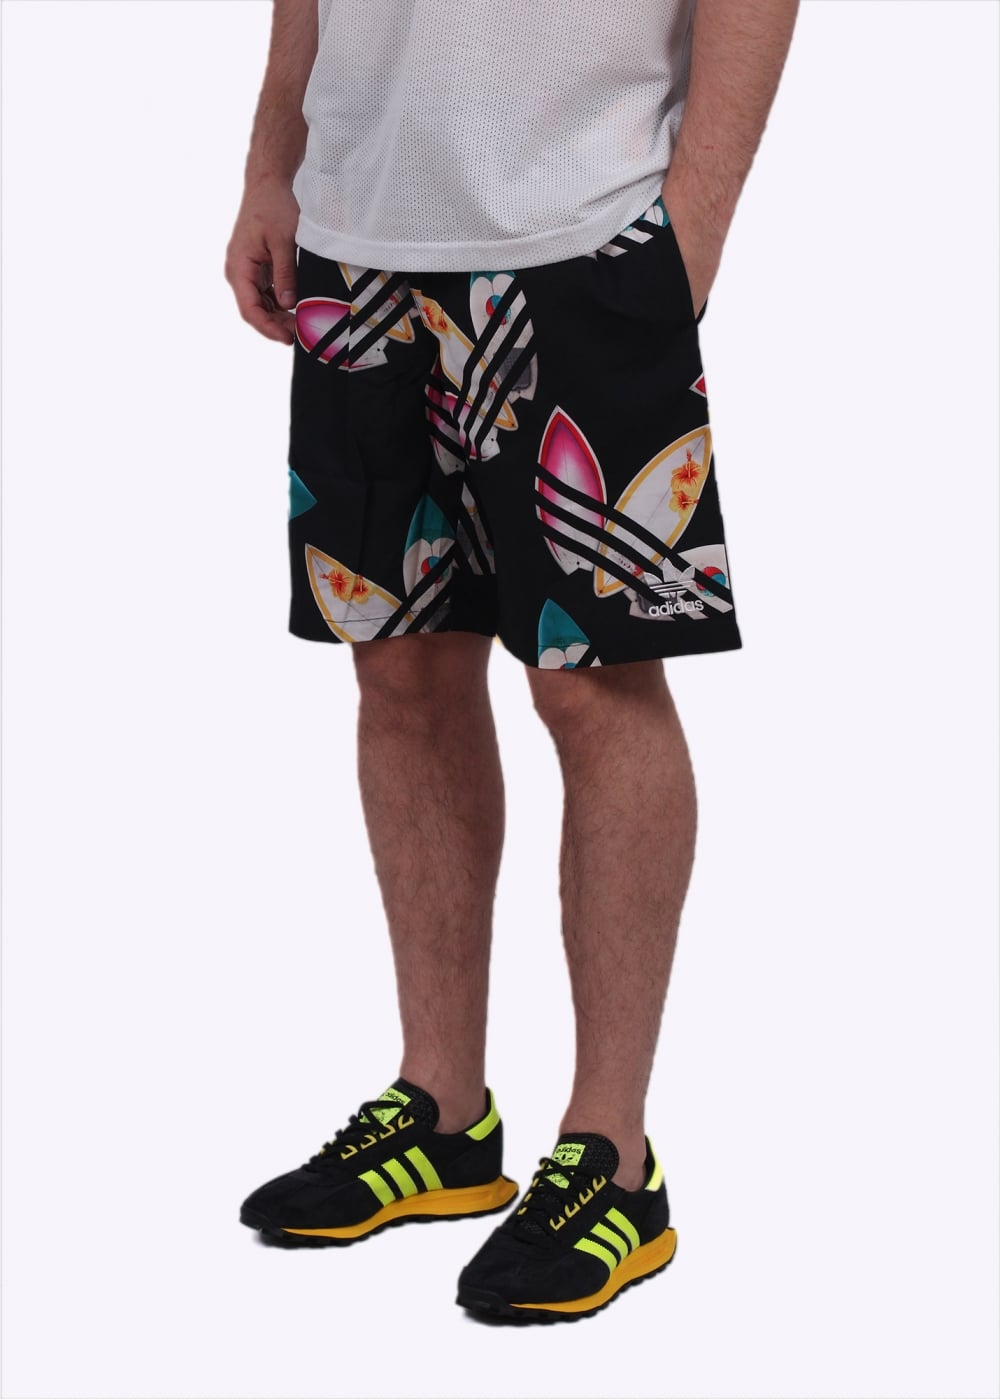 Adidas Originals Apparel x Pharrell Williams Surf Shorts ...